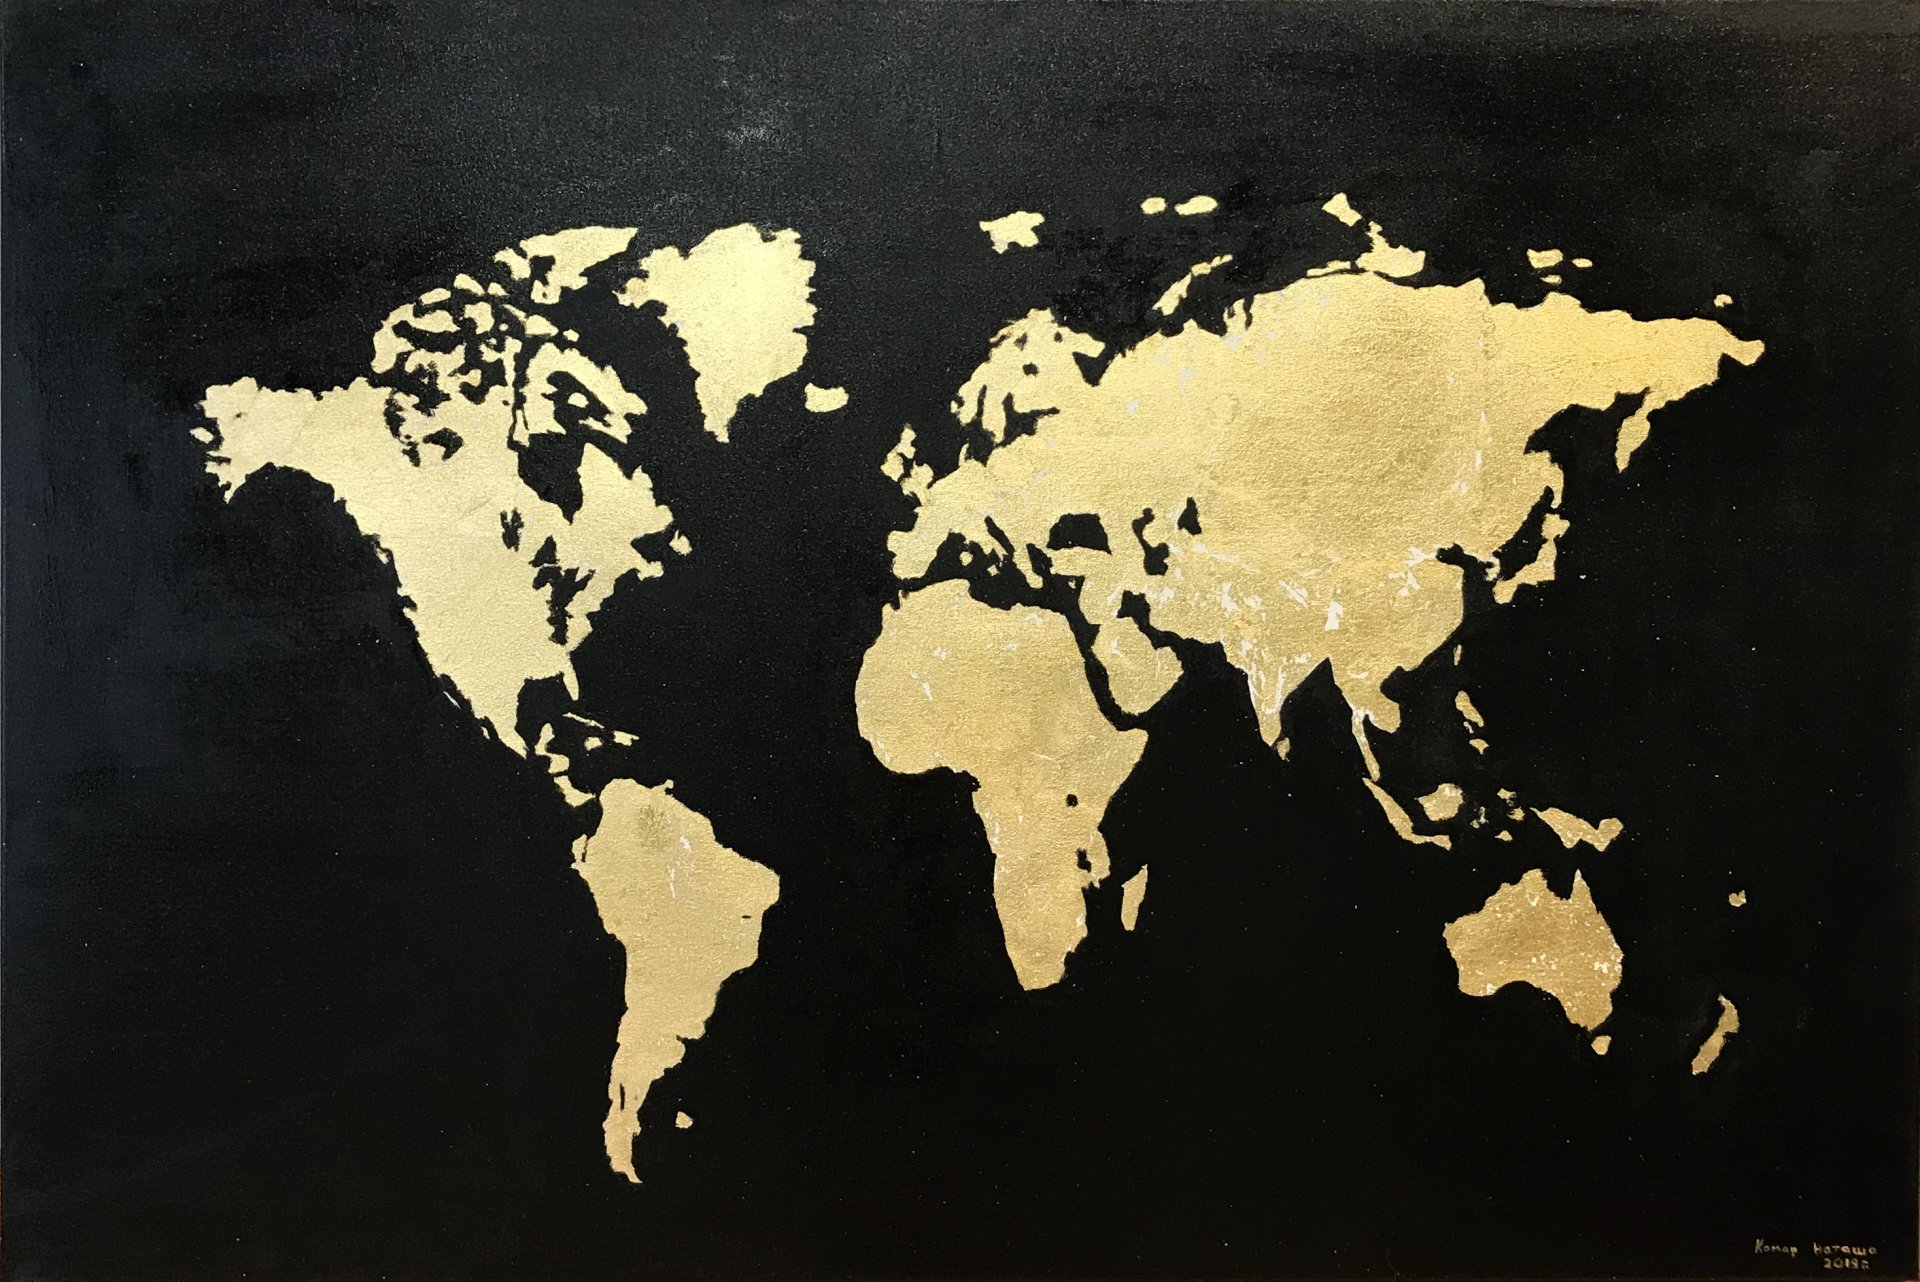 The map of the world is gold. Mainland